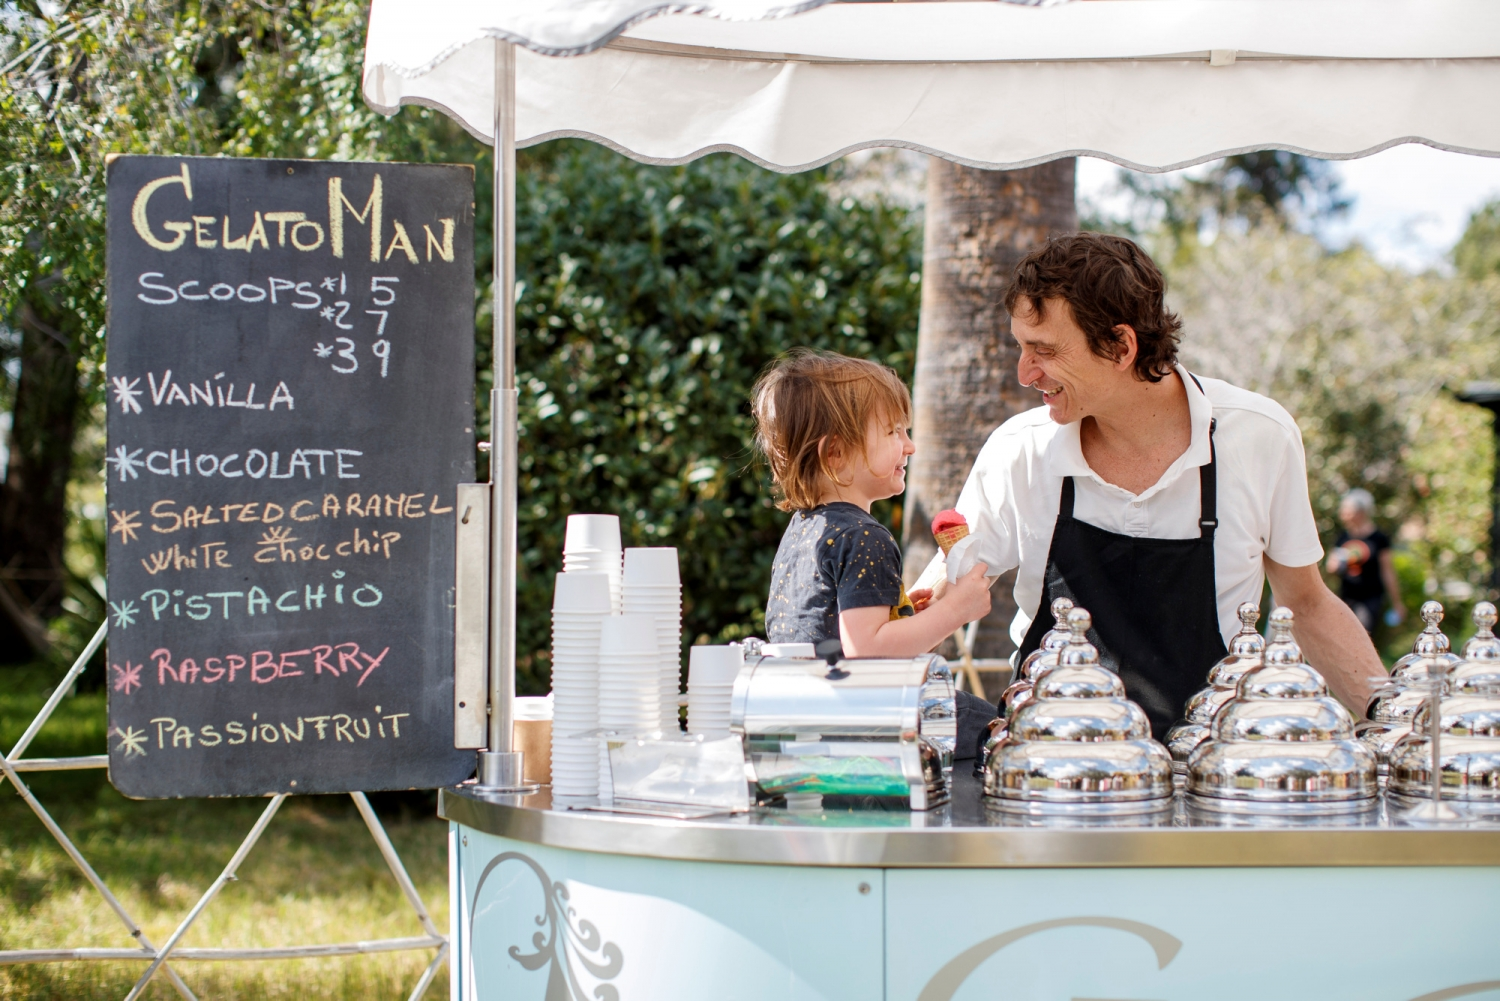 Man and child with old fashioned icecream cart in outdoor setting.